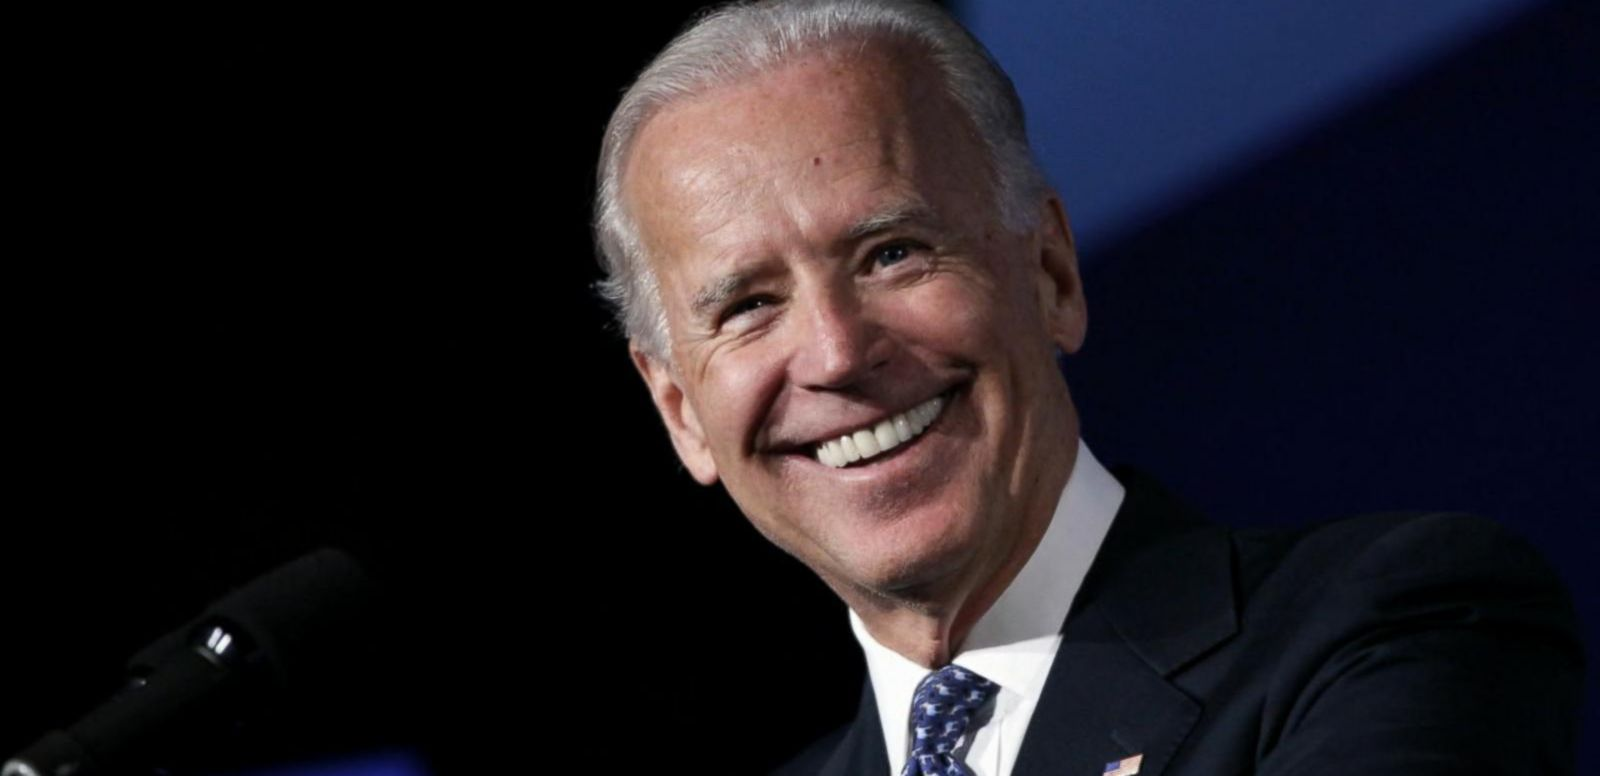 VIDEO: Joe Biden Reportedly Considers Presidential Run